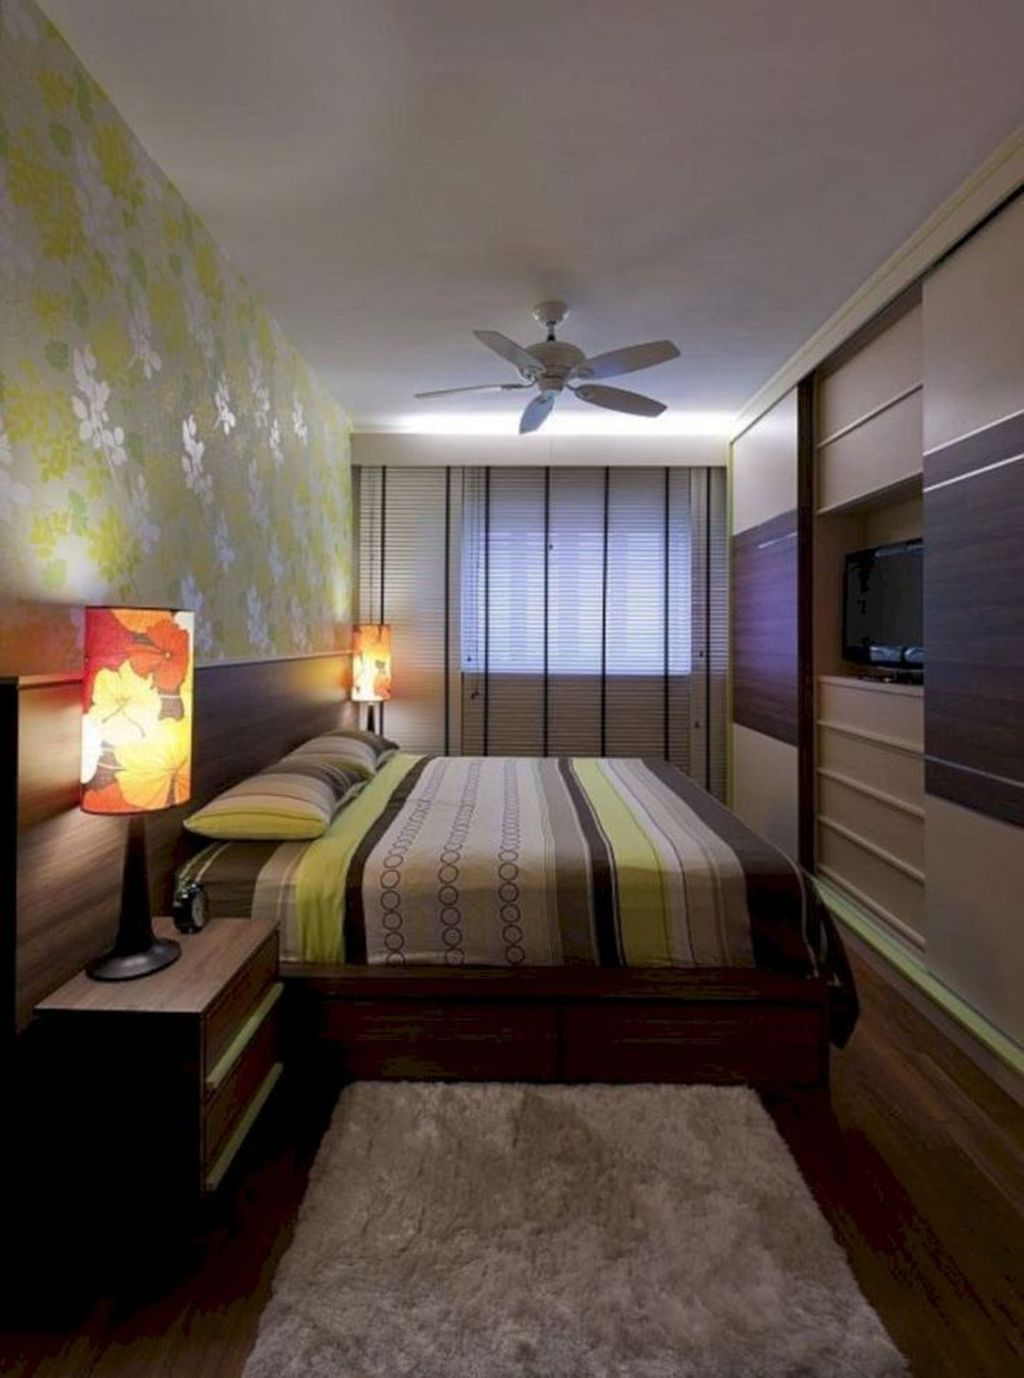 8 Attractive Small Bedroom Design Ideas For Couples To Try in